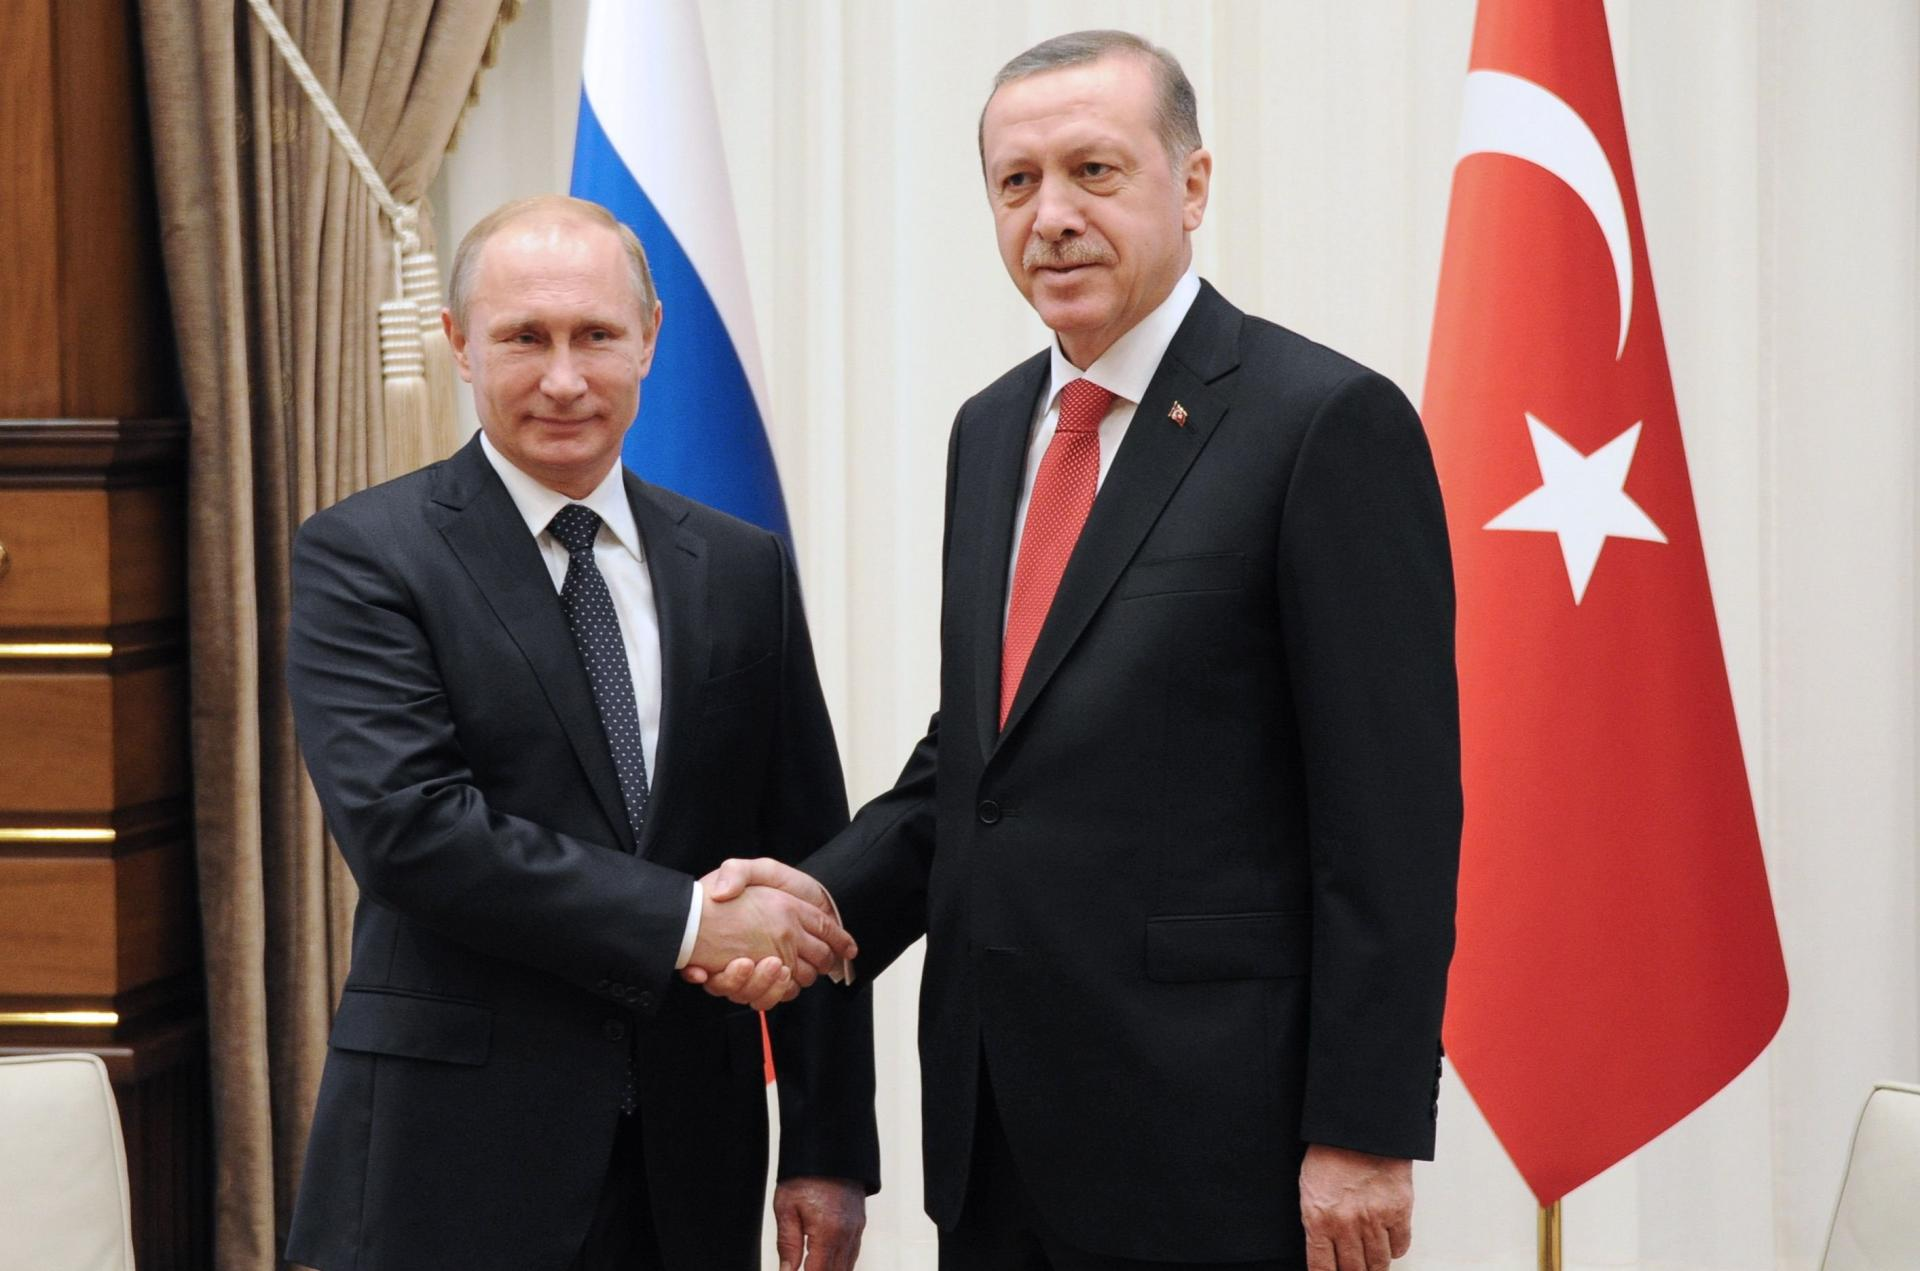 Putin and Erdogan discuss situation in Syria in telephone talks